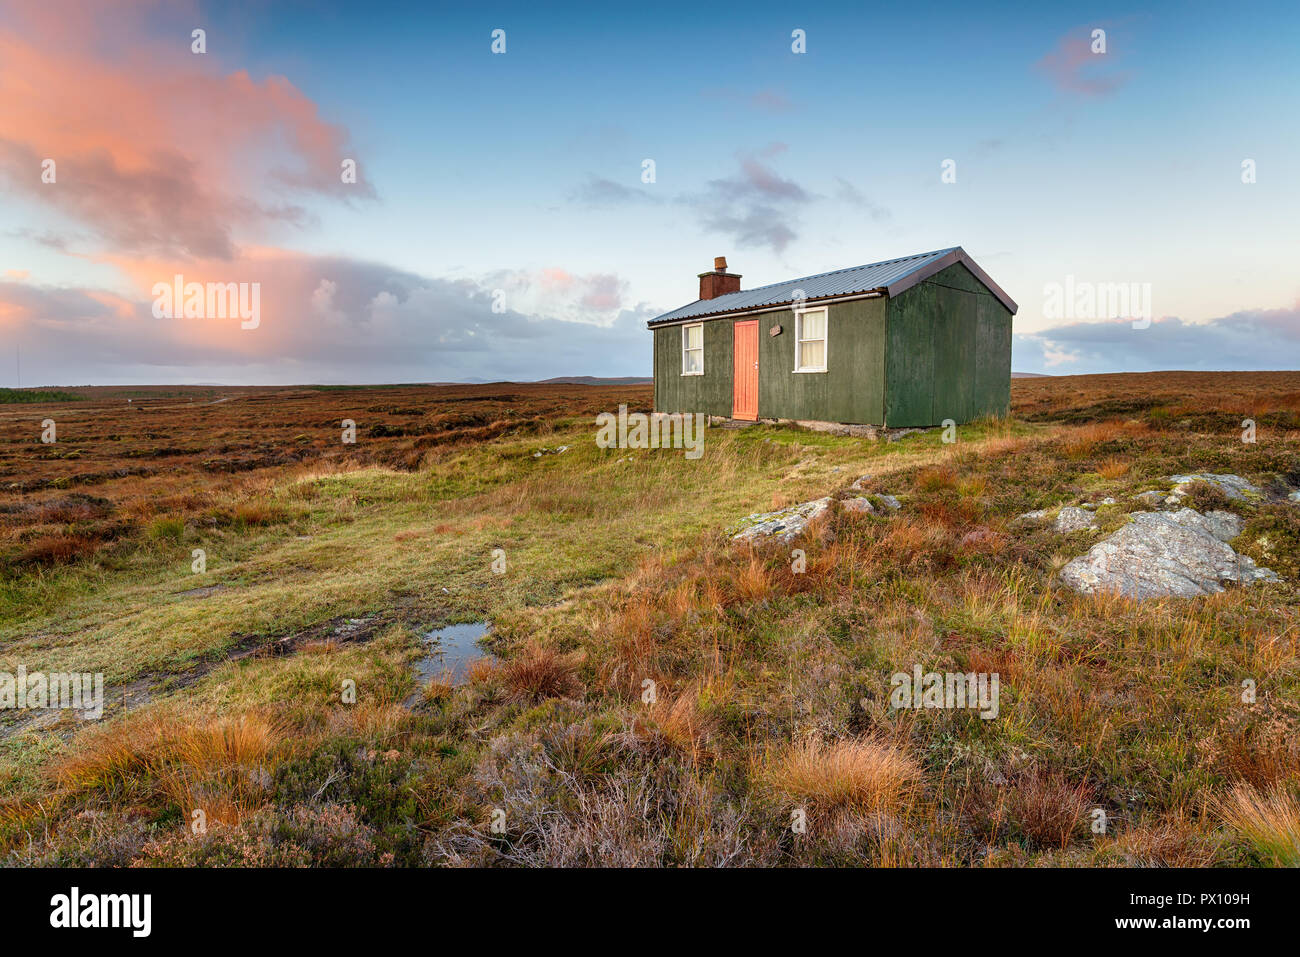 A tiny cottage or hut known as a shieling which is used for shelter while pasturing animals, on peat bog near Stornoway on the Isle of Lewis in Scotla - Stock Image